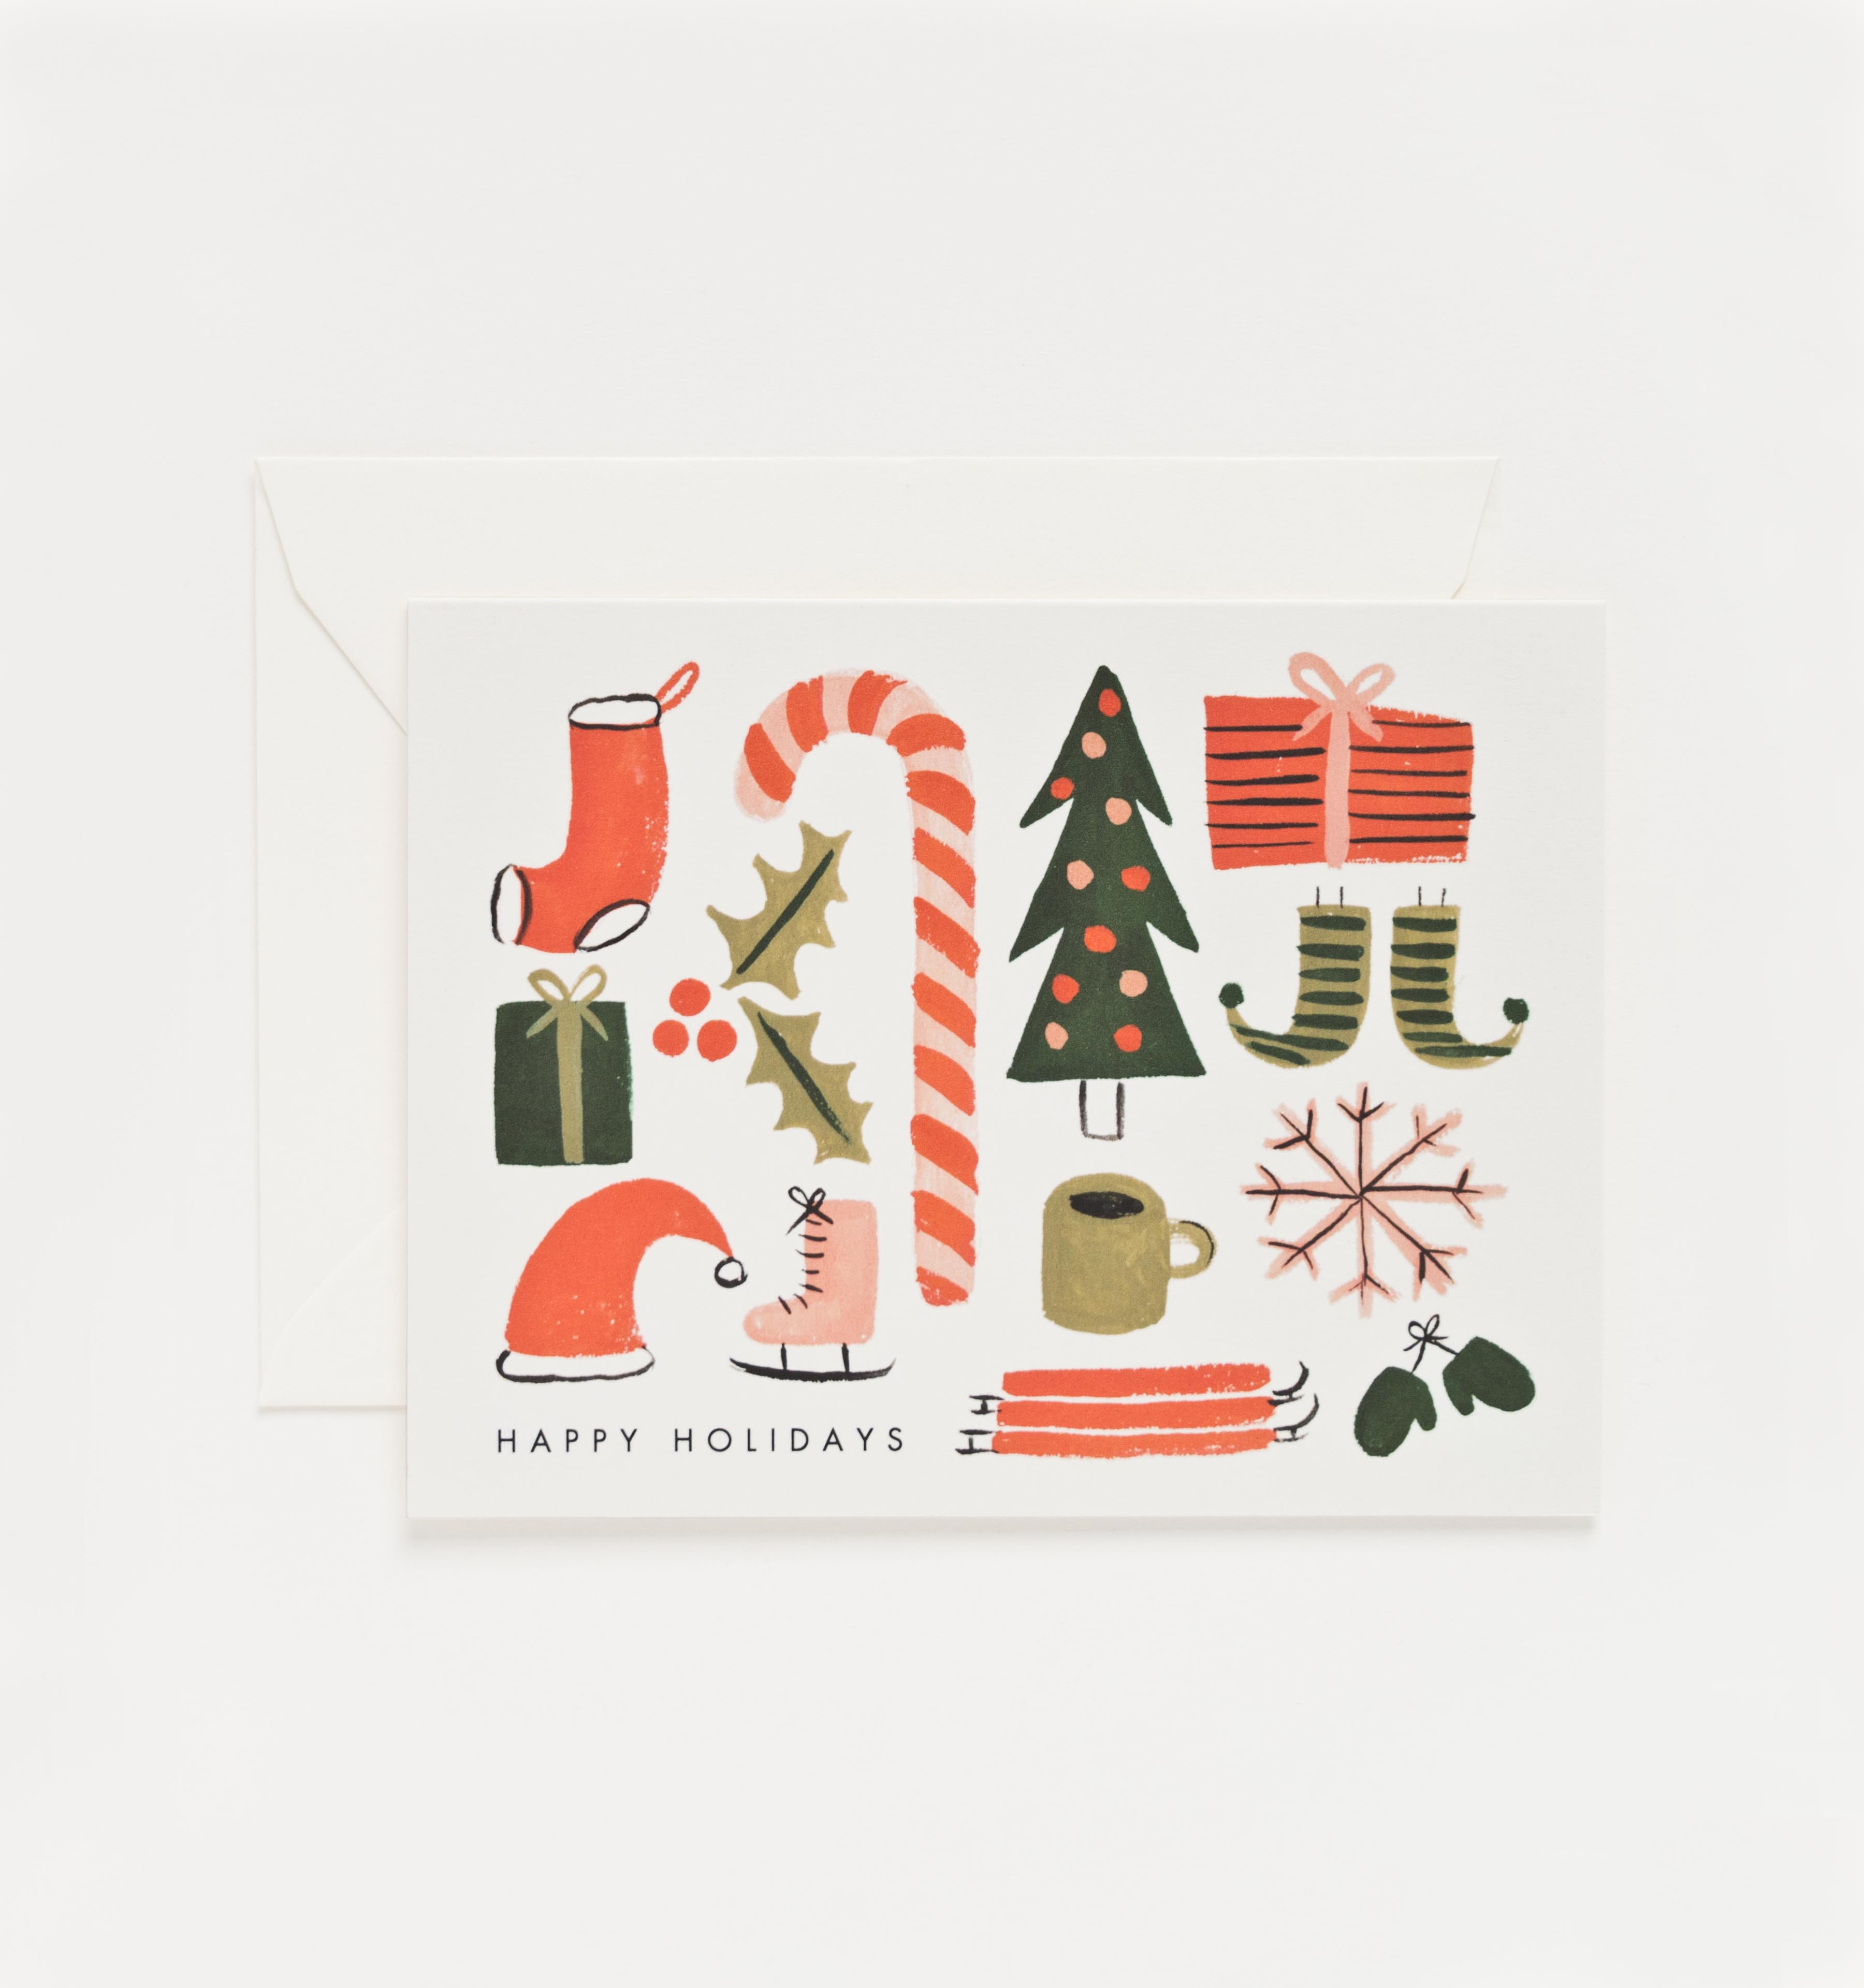 Favorite Things-Holiday Card